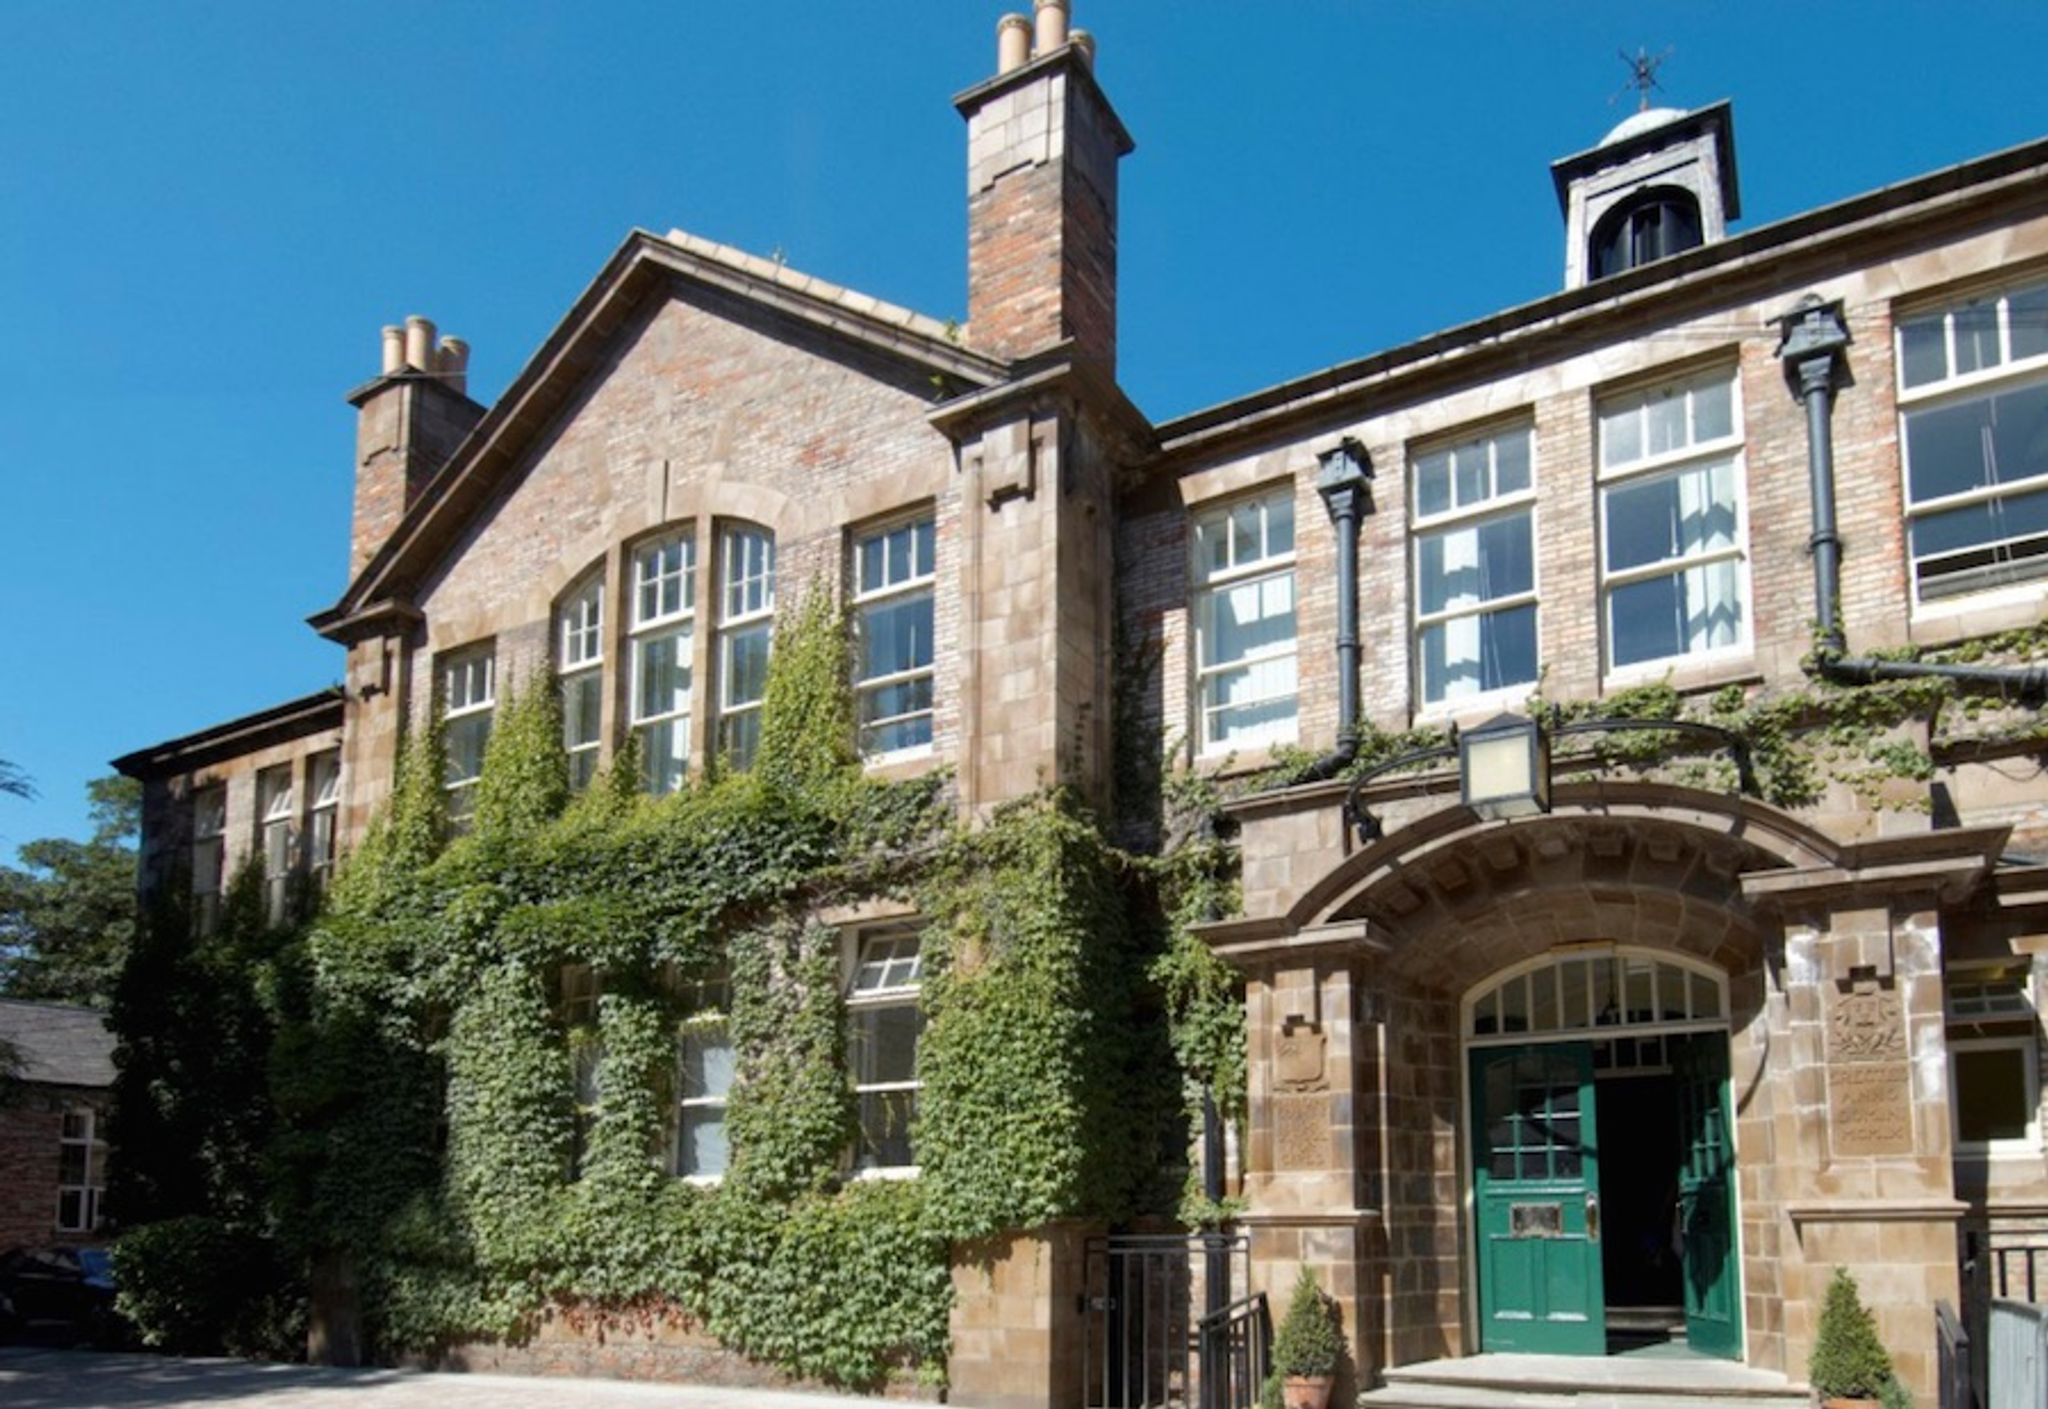 British girls school adopts gender-neutral terms for pupils: 'Welcome to the culture wars'